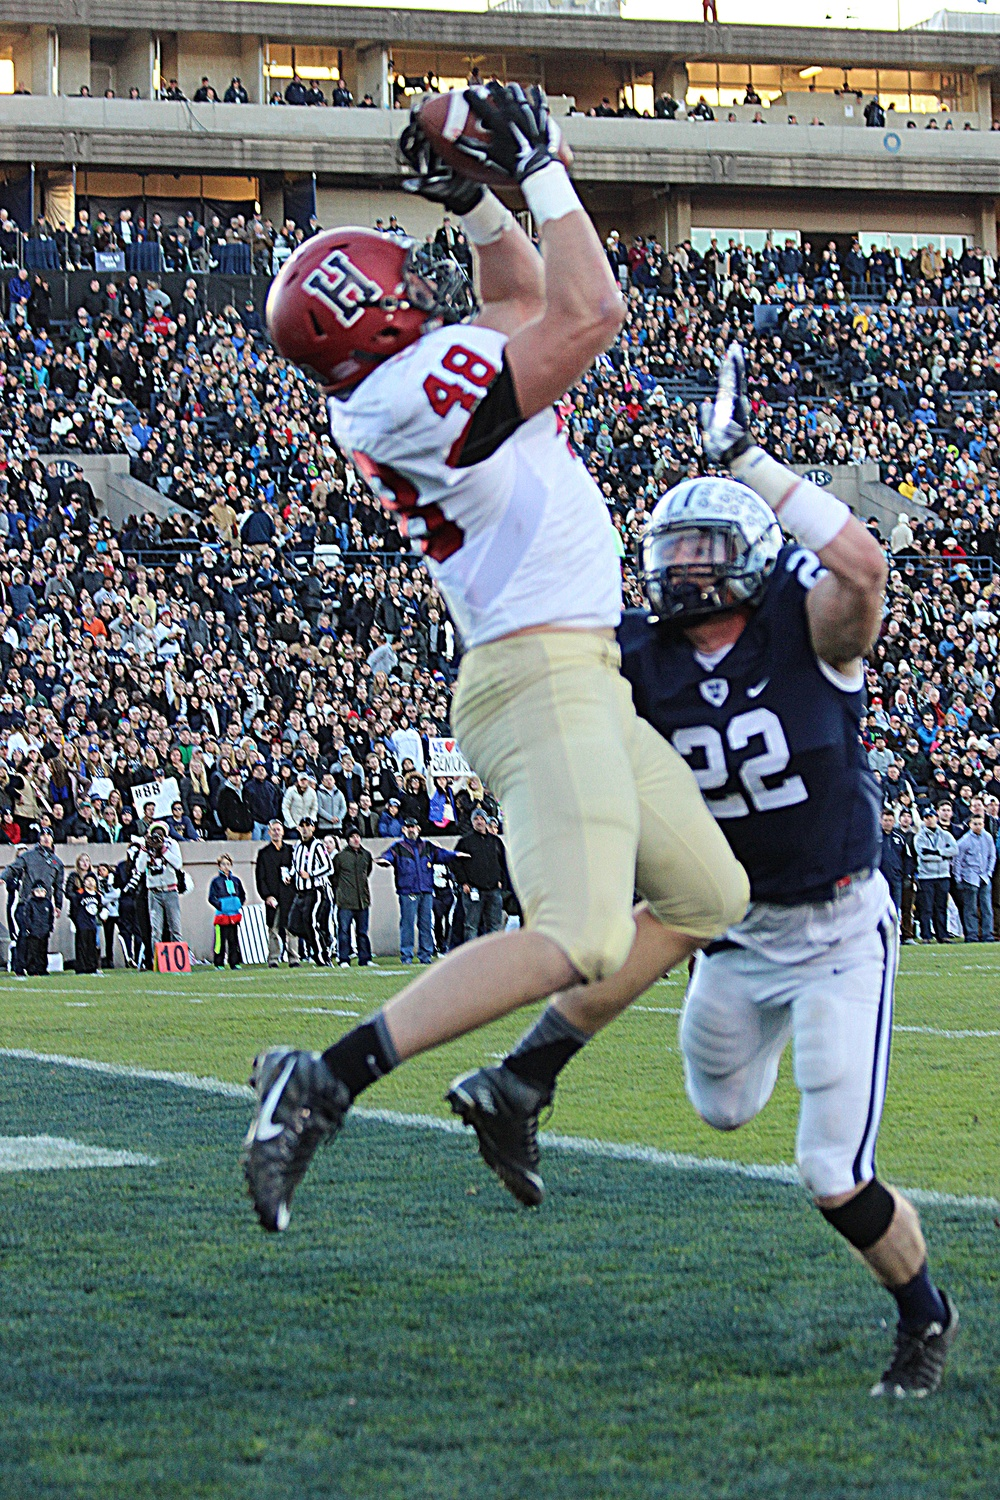 Senior tight end Ben Braunecker finished with 88 yards receiving on six catches, and two touchdowns, at last November's Harvard-Yale game in New Haven.